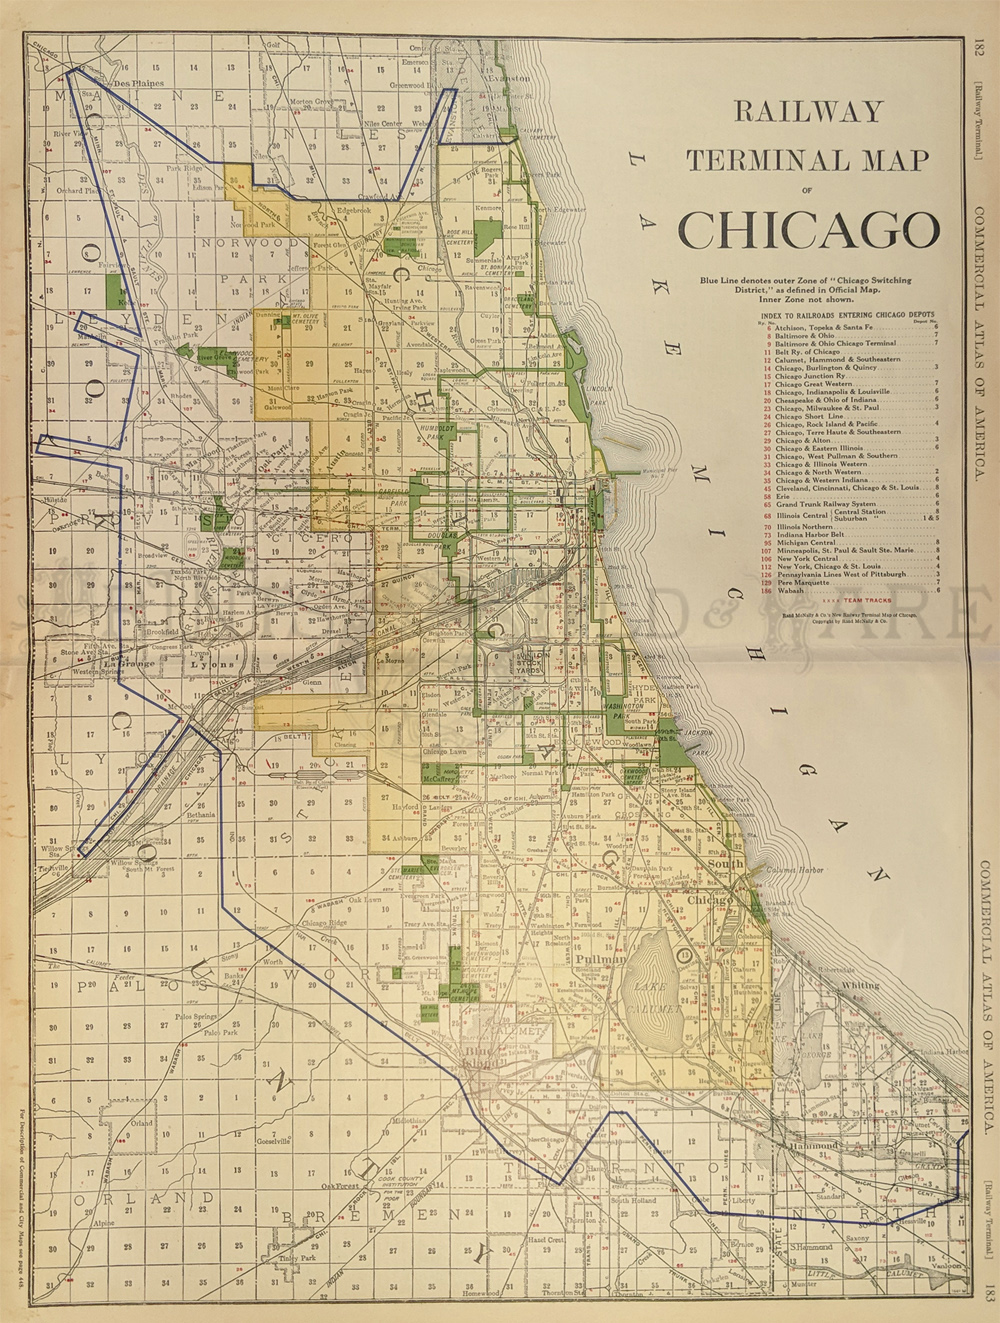 Prints Old & Rare - Chicago, Illinois - Antique Maps & Prints on cook county map, city mo map, city of san antonio sea world, northside chicago map, 21st ward map, chicago city street map, illinois map, city ny map, chicago city limits map, chicago neighborhood map, 1960s chicago map, city wi map, city md map, city of skyline, city nc map, downtown chicago map, city of arizona state, detailed chicago city map, distribution chicago map, california chicago map,